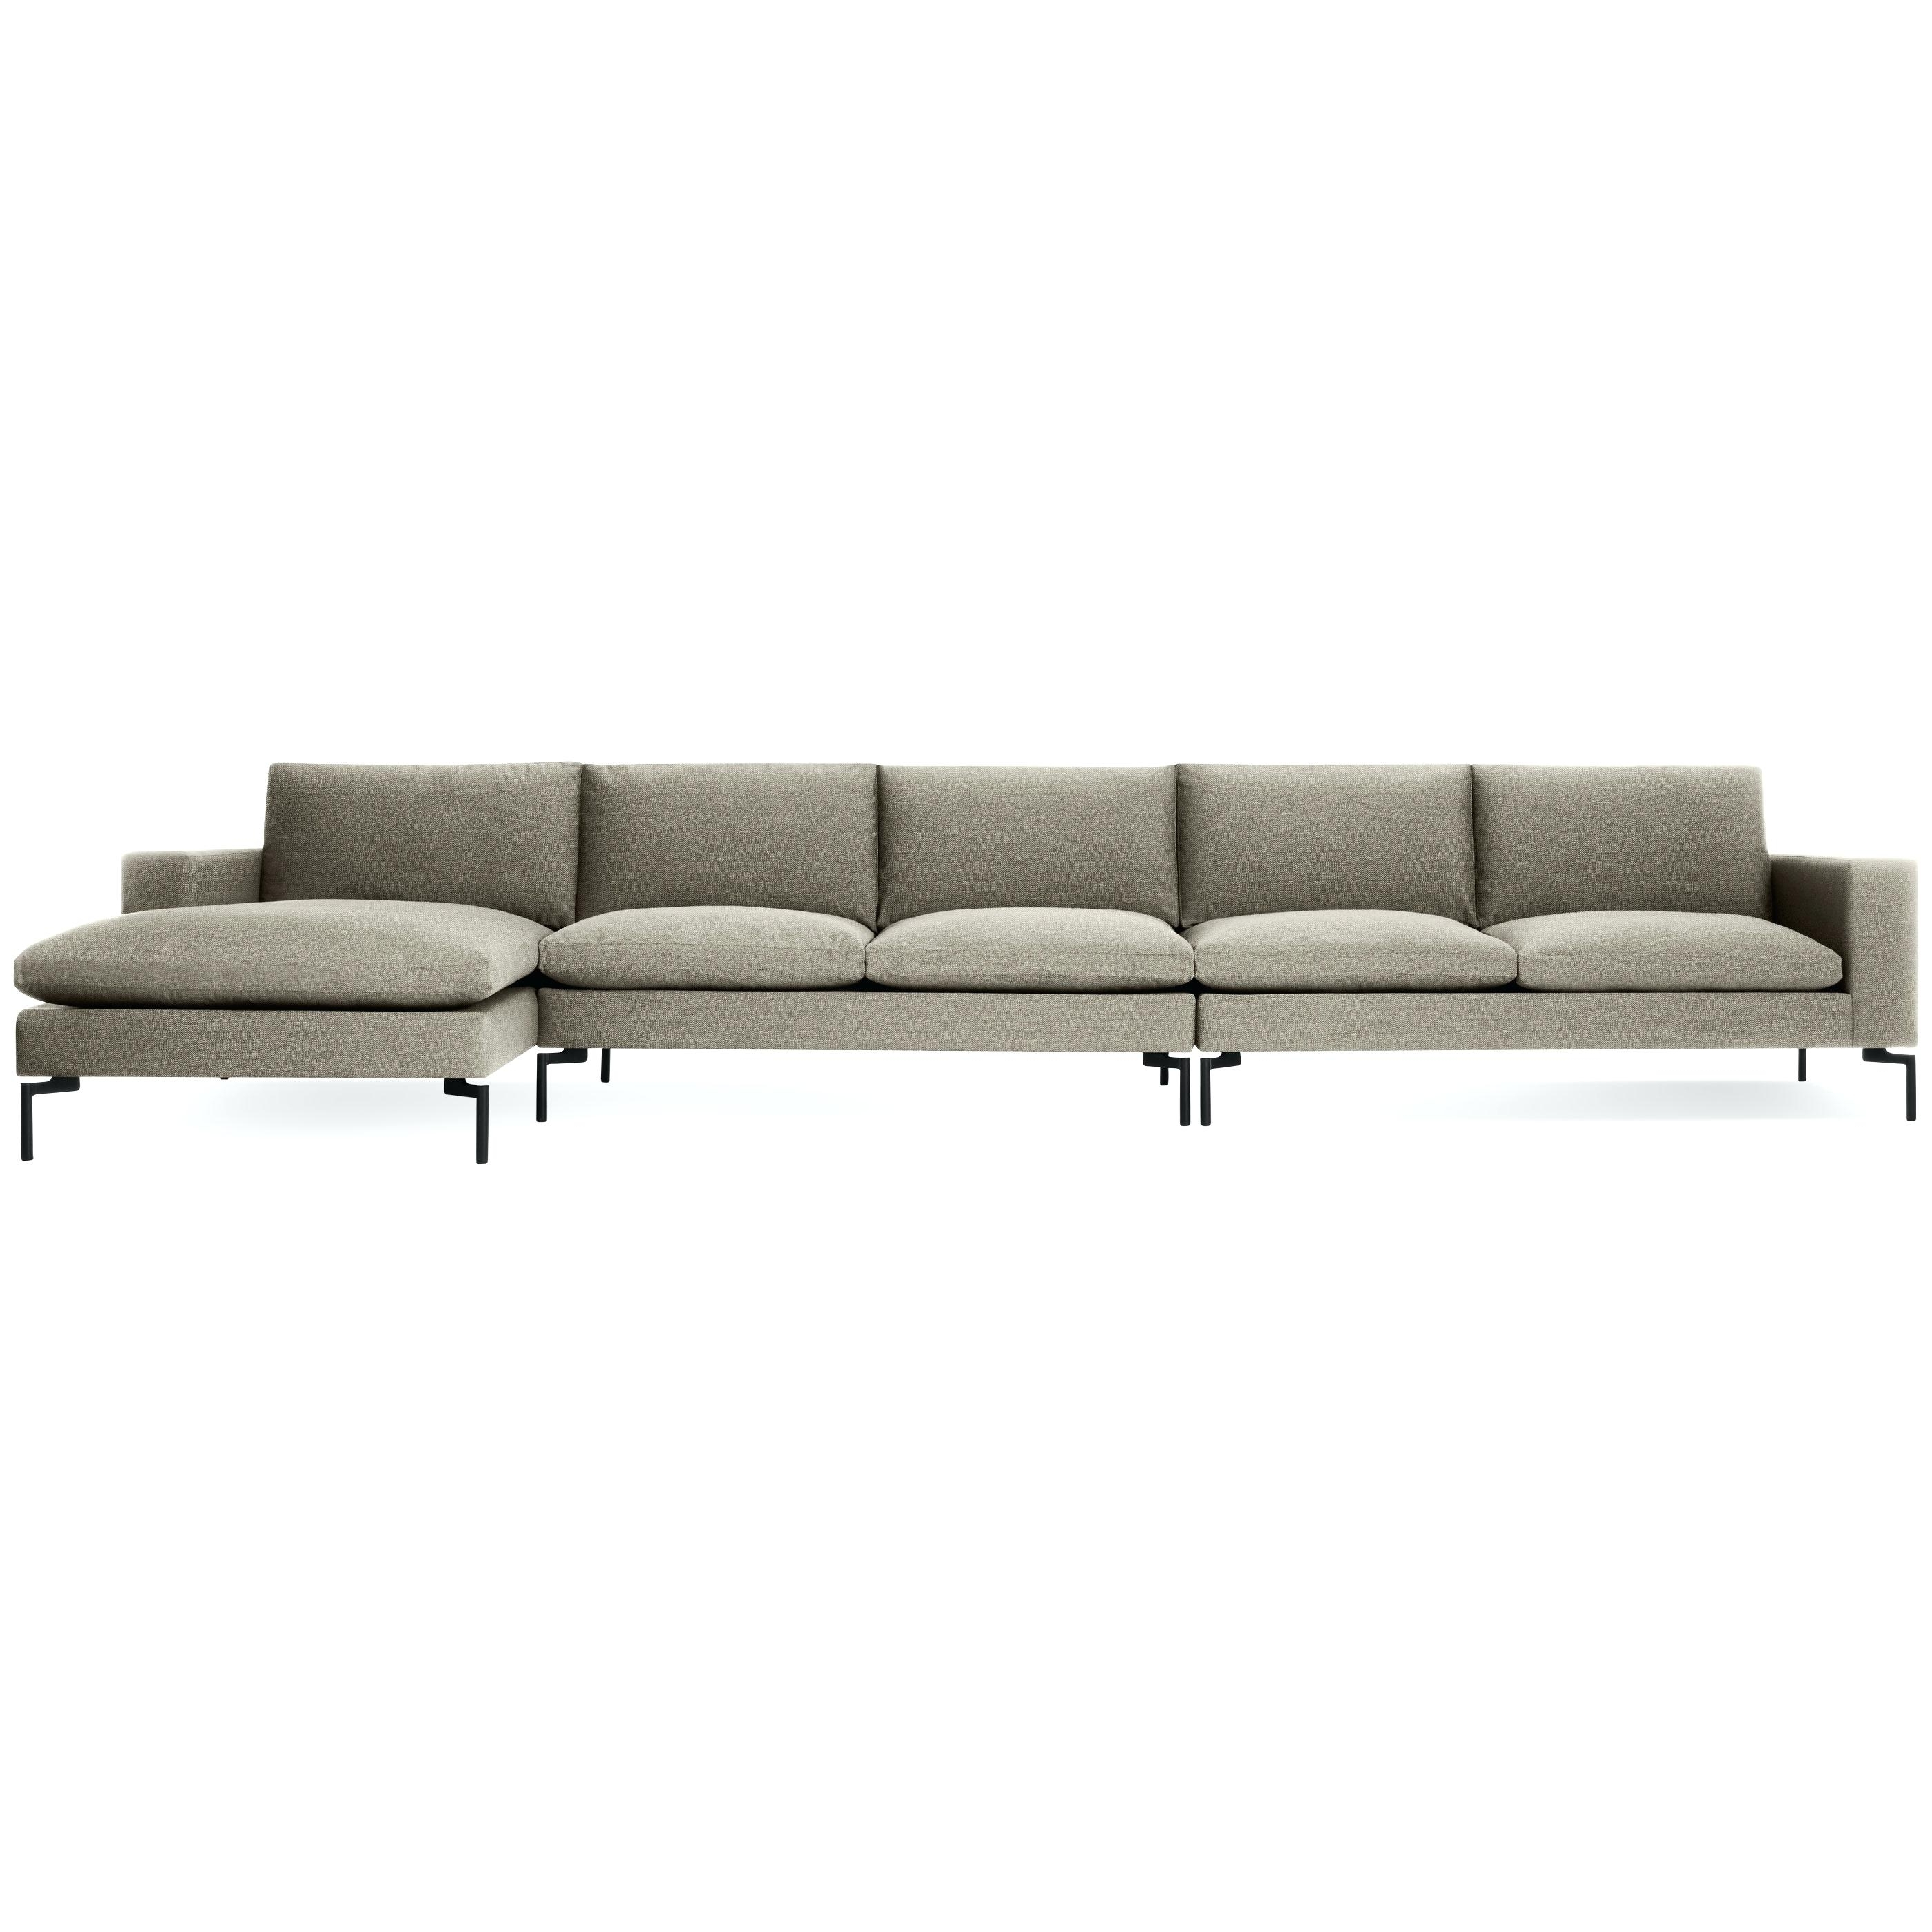 Sectional Bed Couch Bh Sleeper Sofa Leather Ashley Furniture Ikea Inside Latest Nebraska Furniture Mart Sectional Sofas (View 13 of 20)